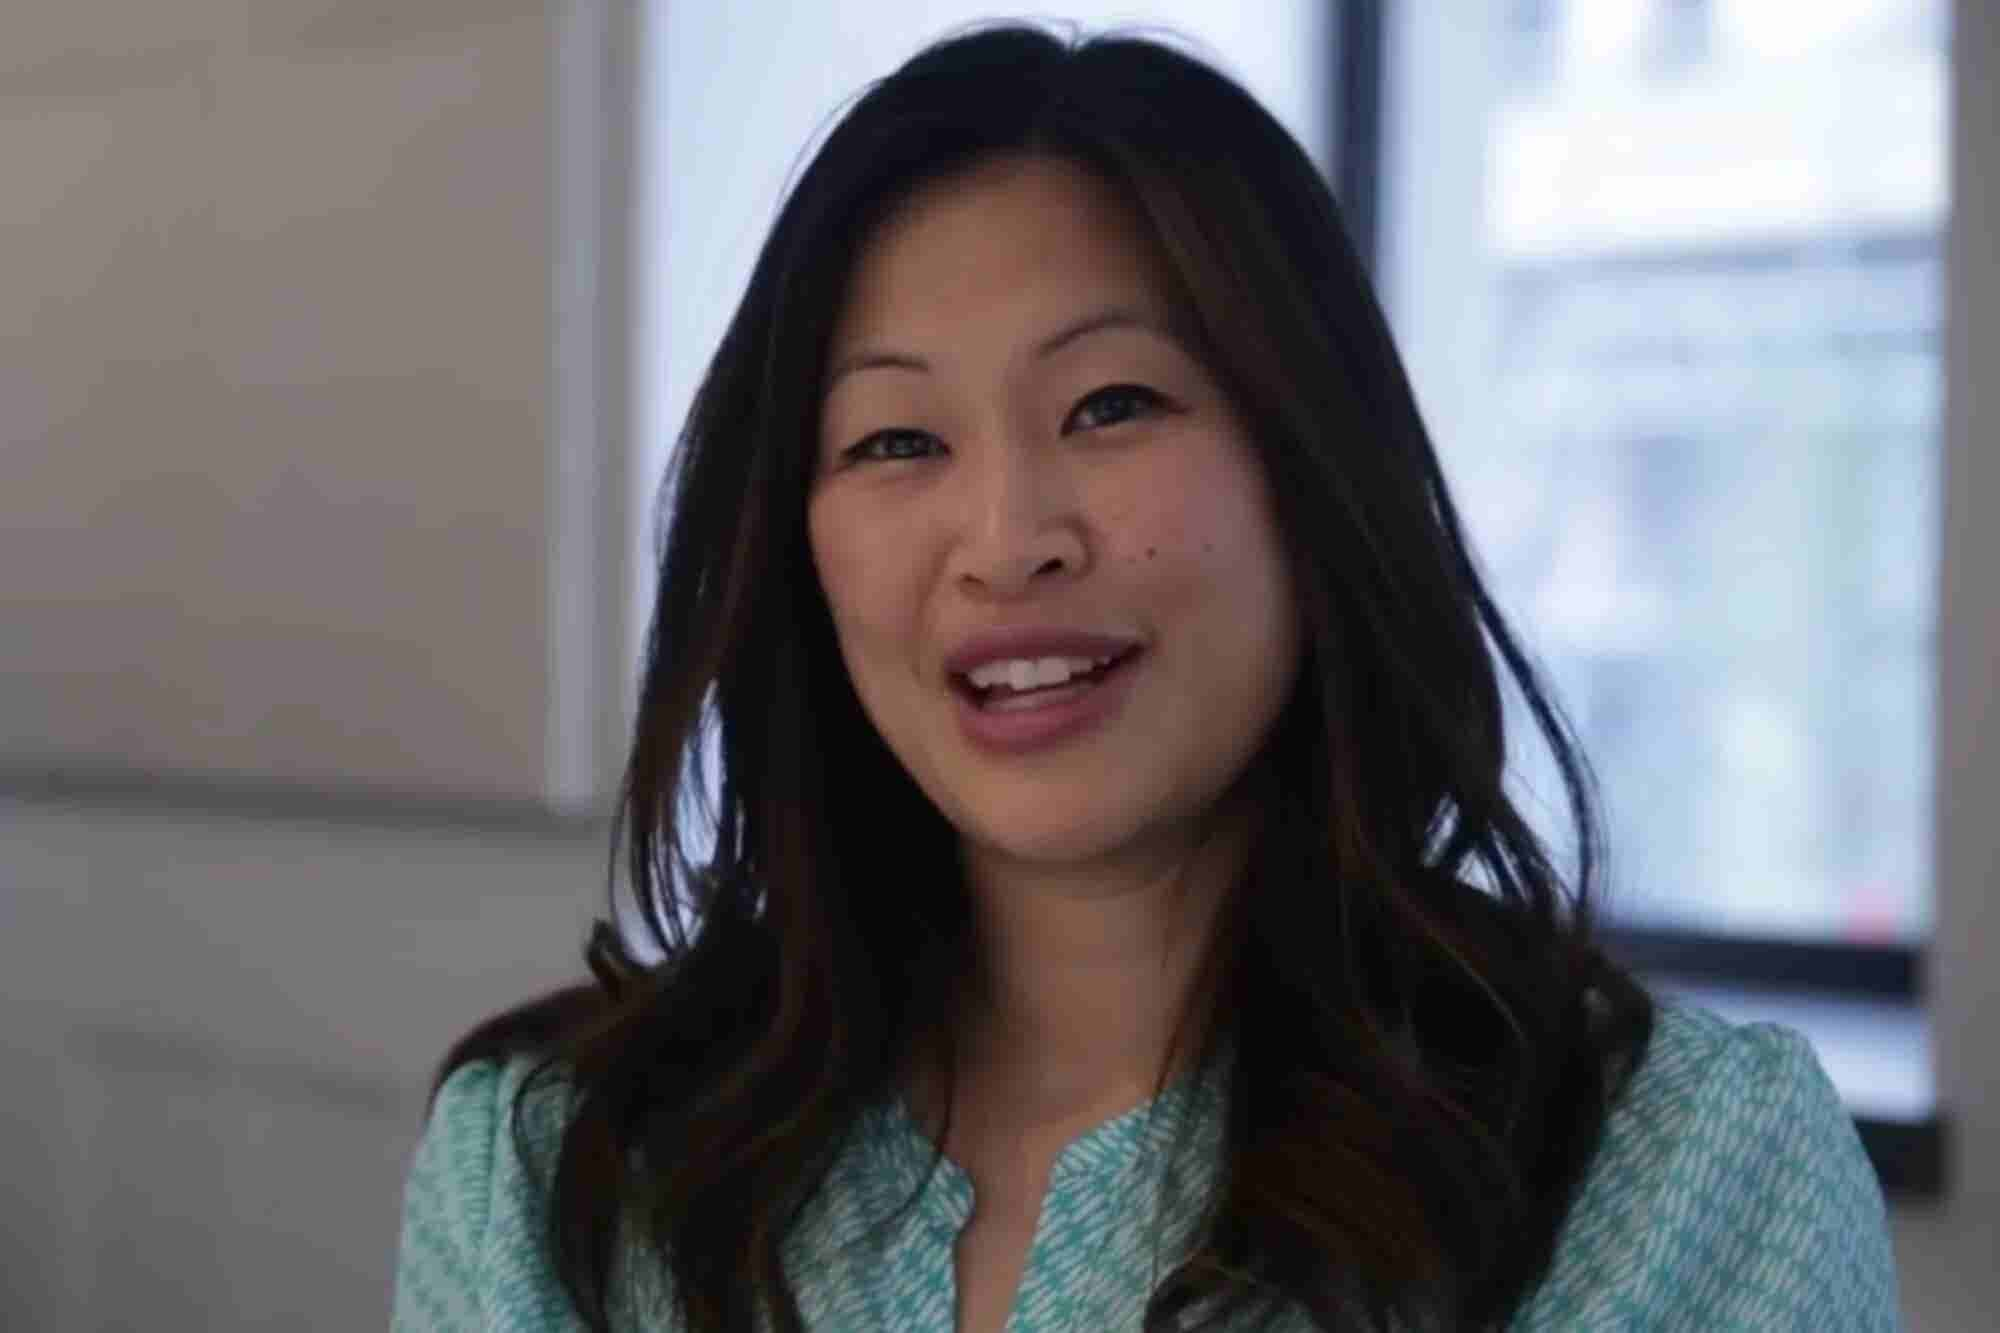 This Co-Founder Used Her Corporate Maternity Leave to Assess...